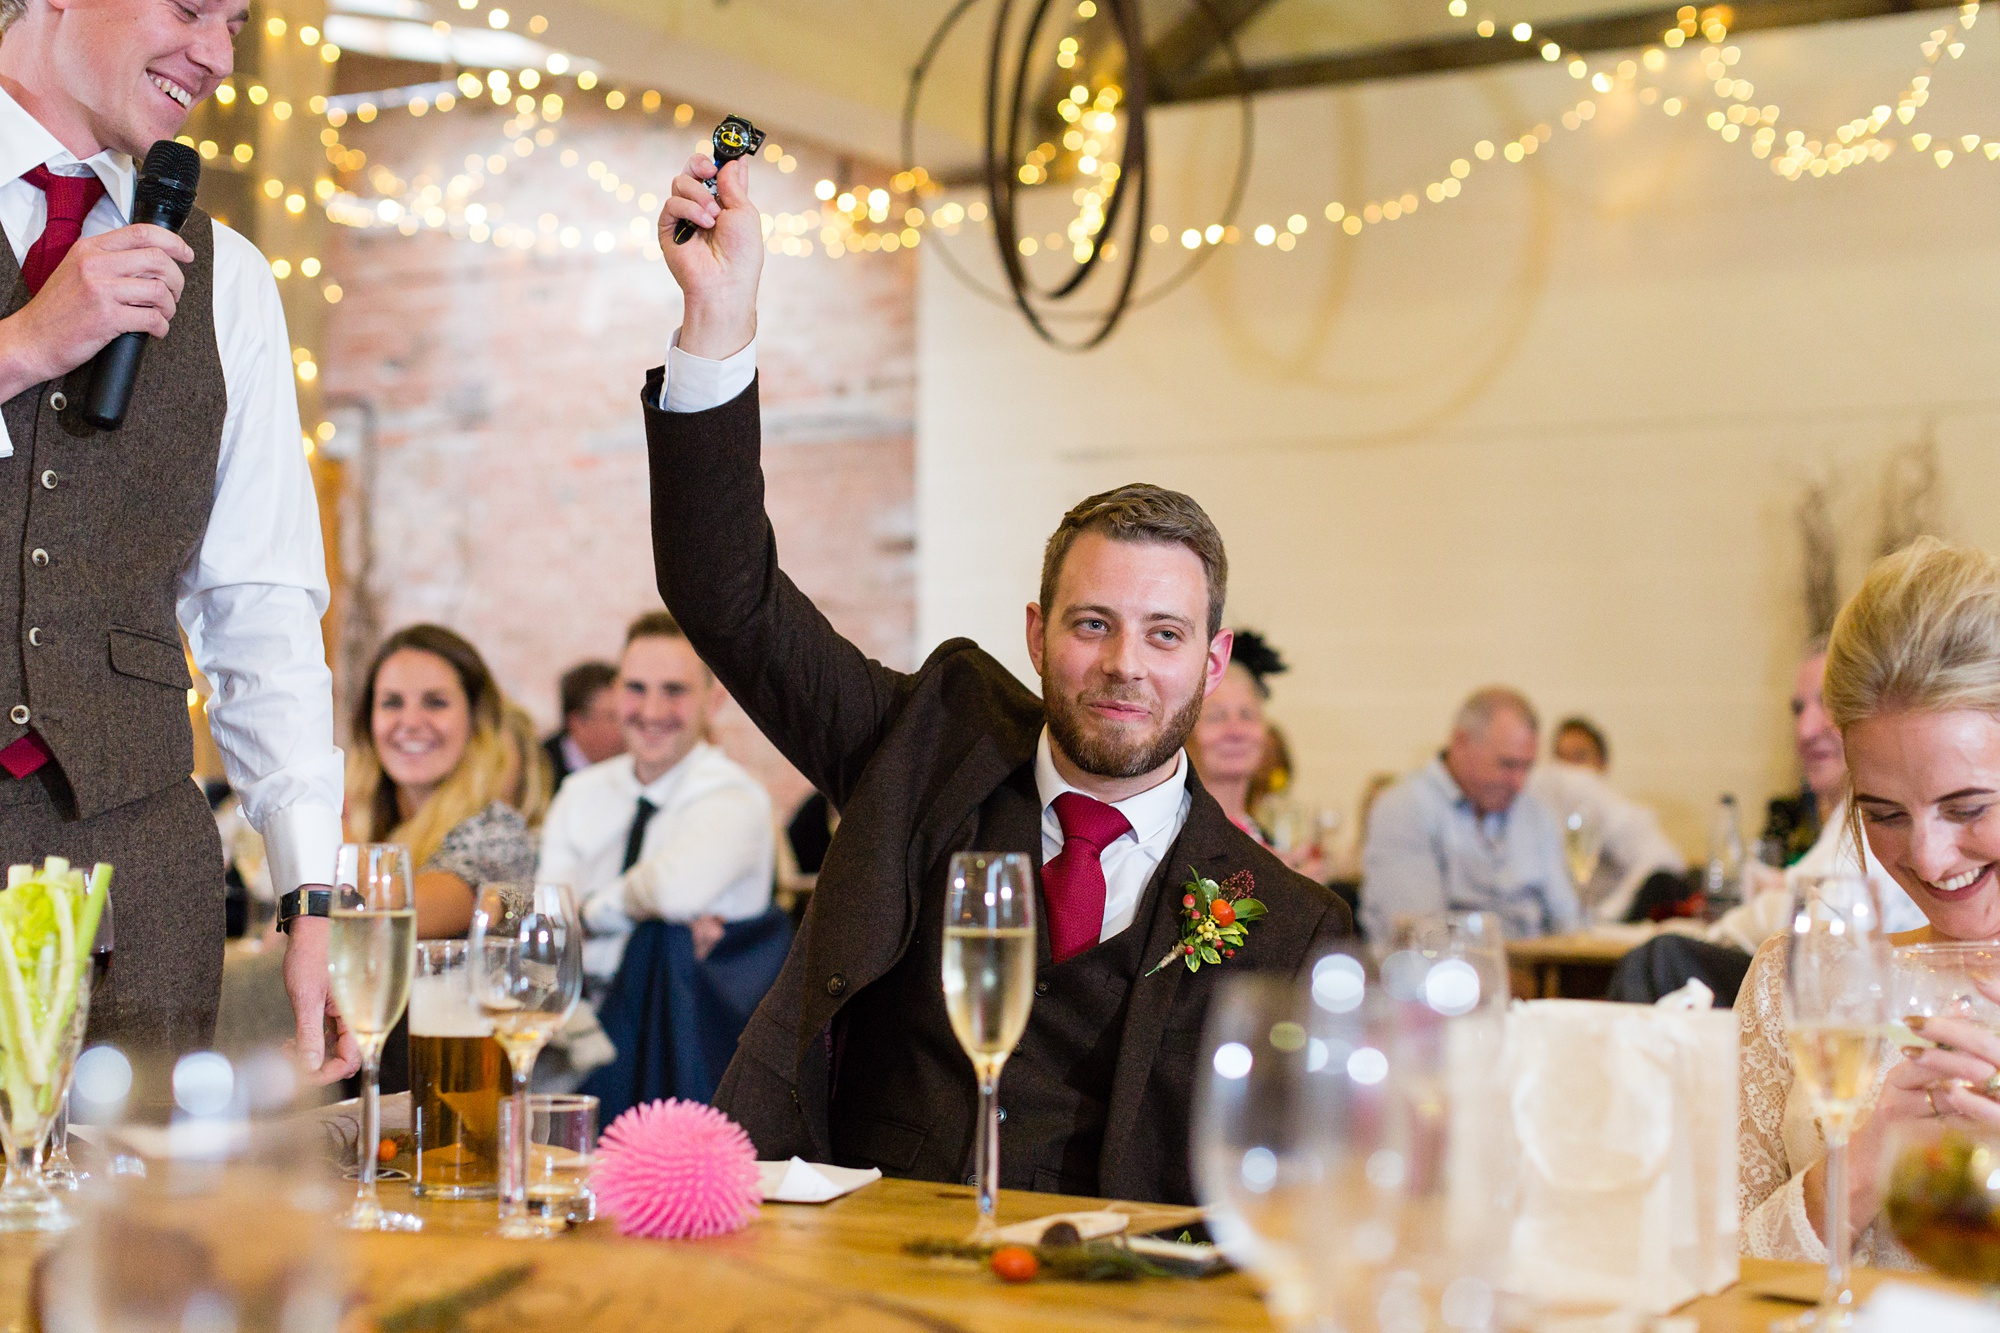 Yorkshire Wedding Photographers at Barmbyfield Barn Groom holds his hand up high